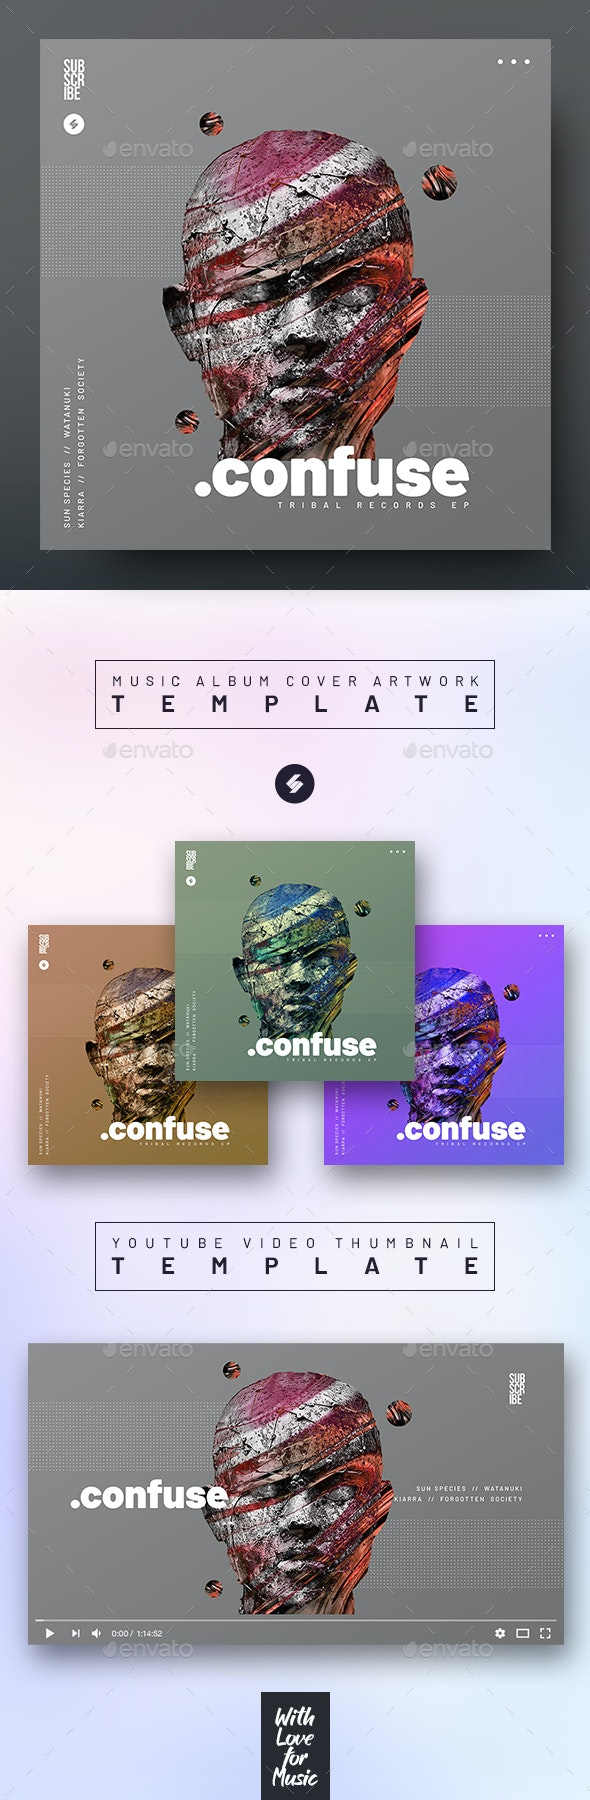 Confuse – Music Album Cover Artwork / Youtube Video Thumbnail Template - Miscellaneous Social Media